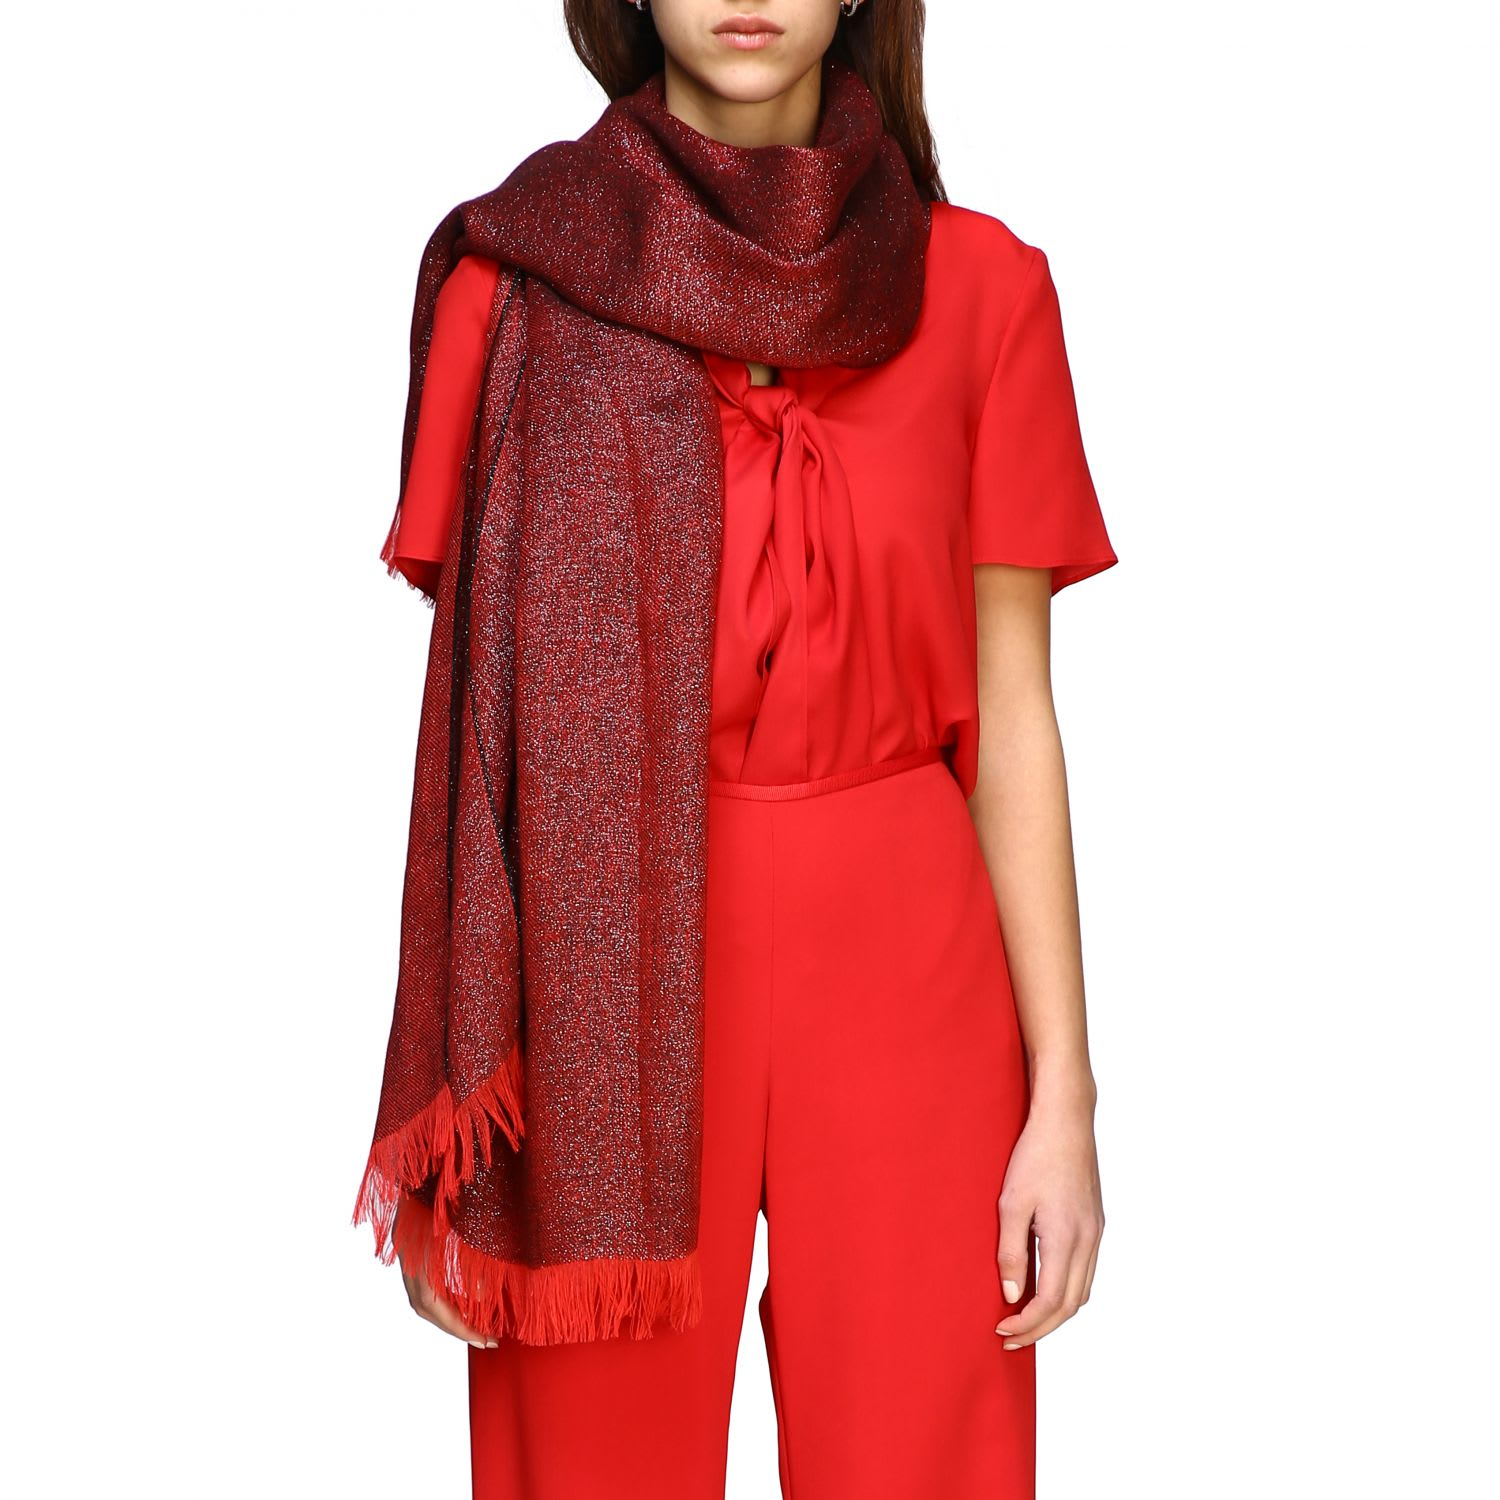 Emporio Armani Scarf With Logo In Red